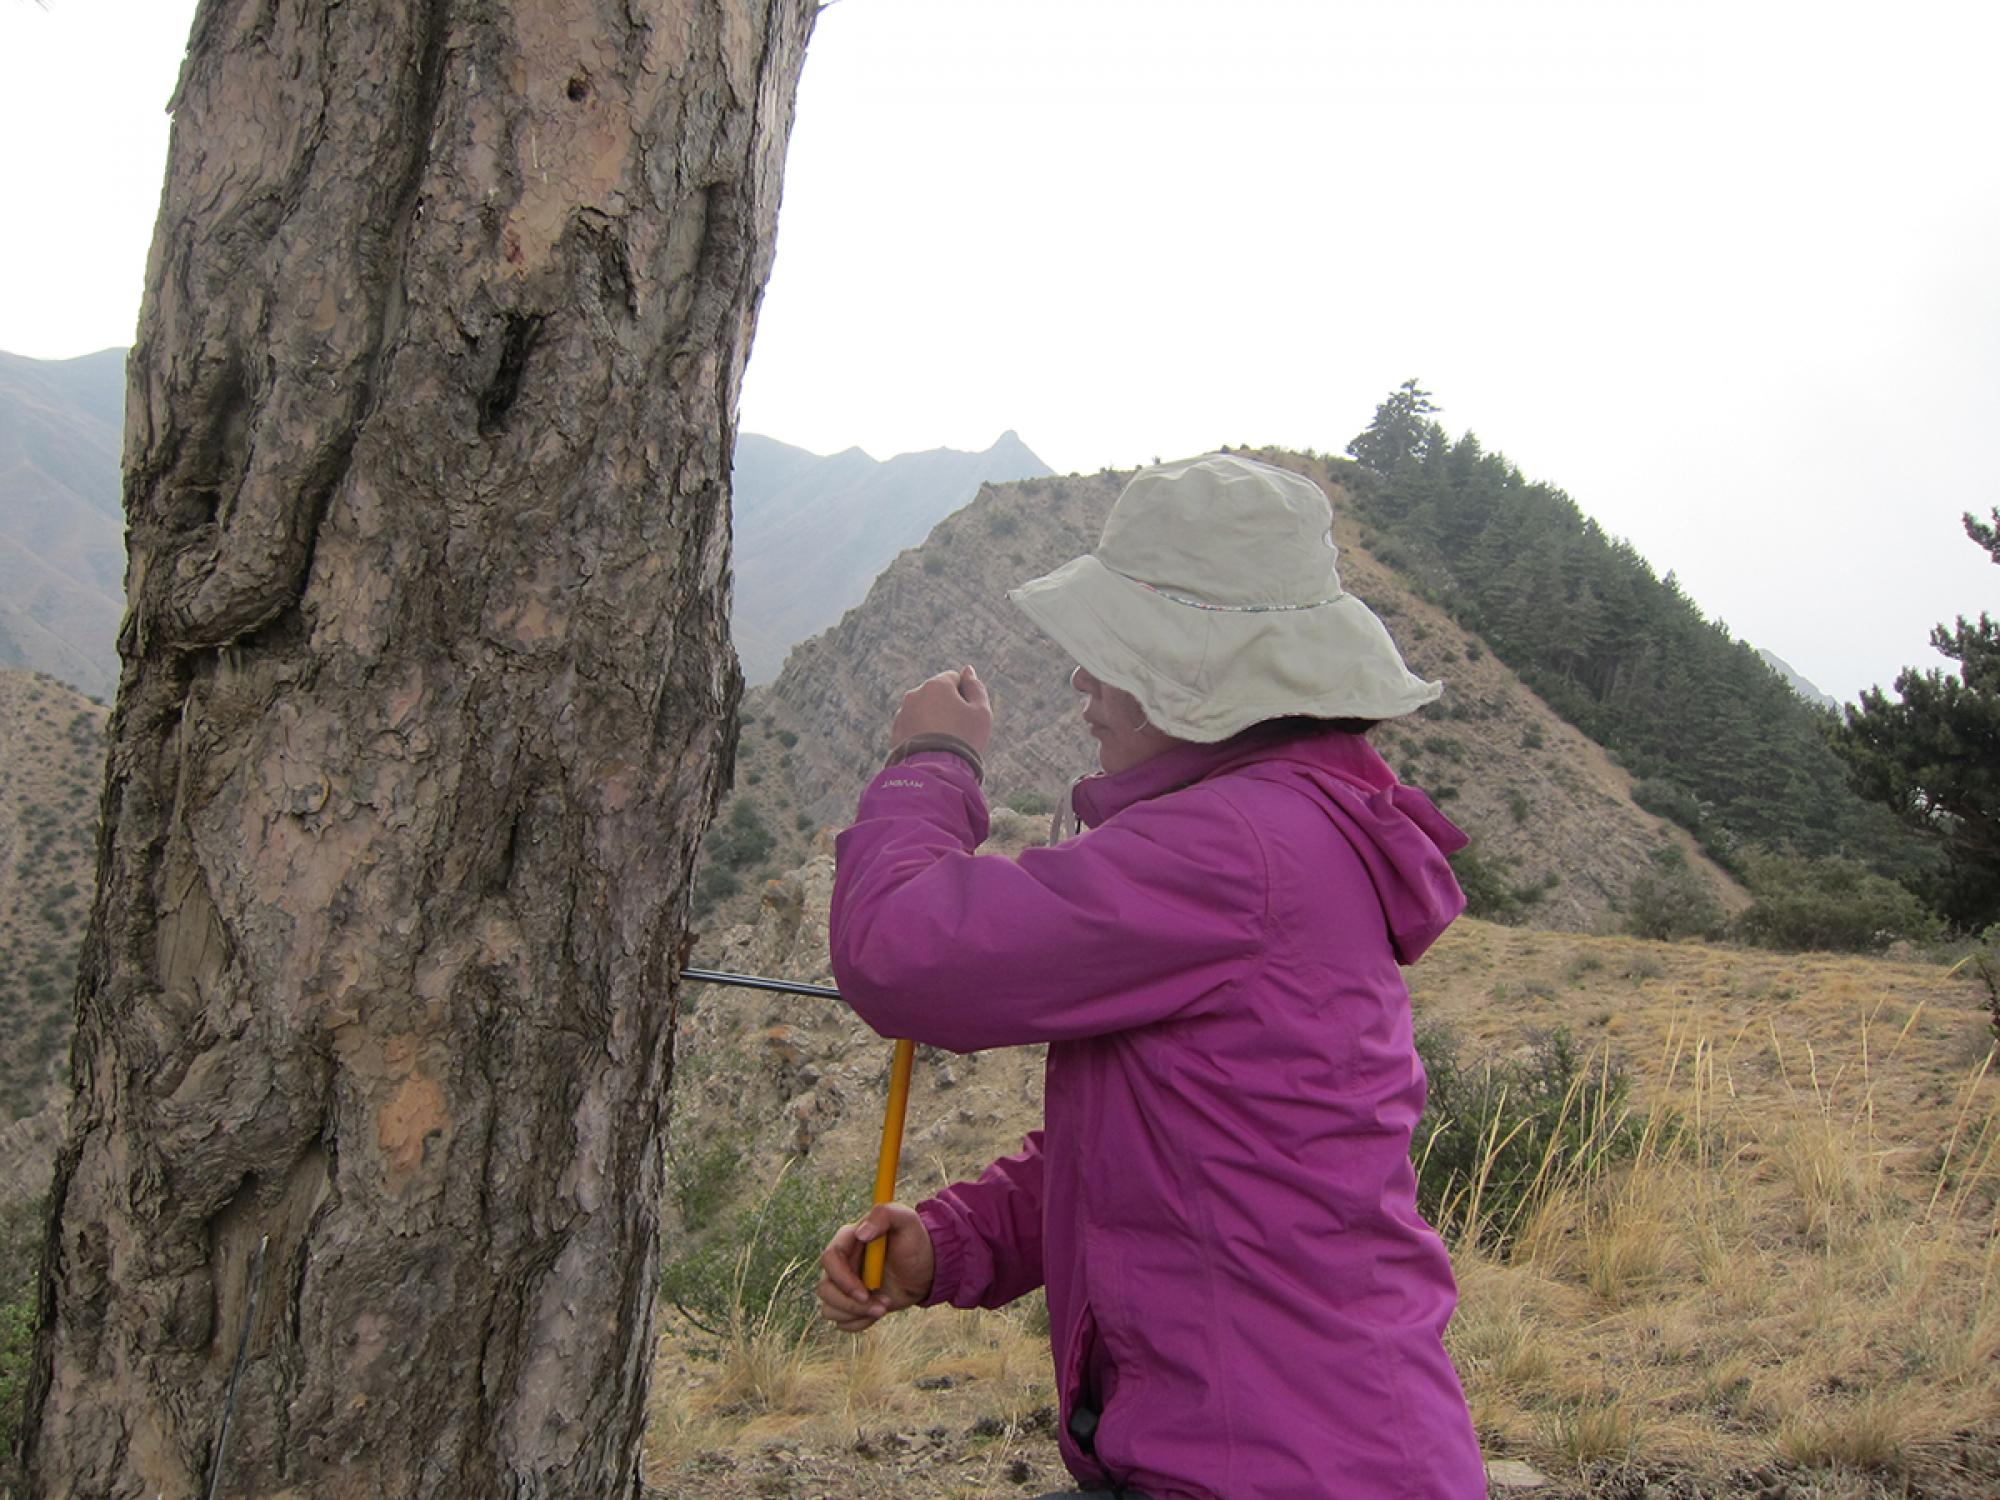 Prof. Huiming Song from the Tree-ring Laboratory of The Institute of Earth Environment at the Chinese Academy of Sciences in Xi'an, China, collects a core sample from a tree on Mt. Hasi.using a hand-turned increment borer.